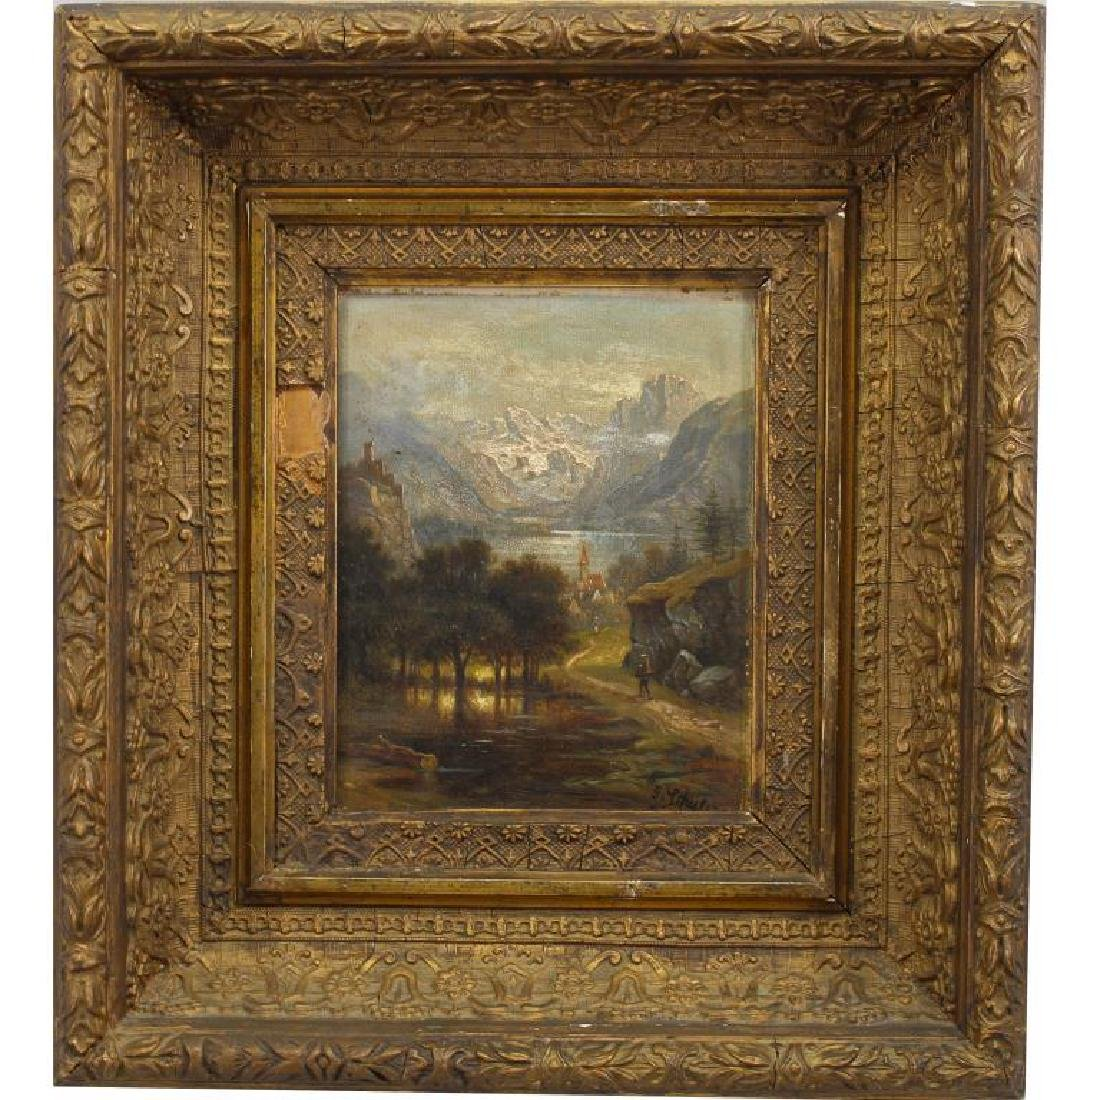 Signed 19th C. Tyrolean Landscape